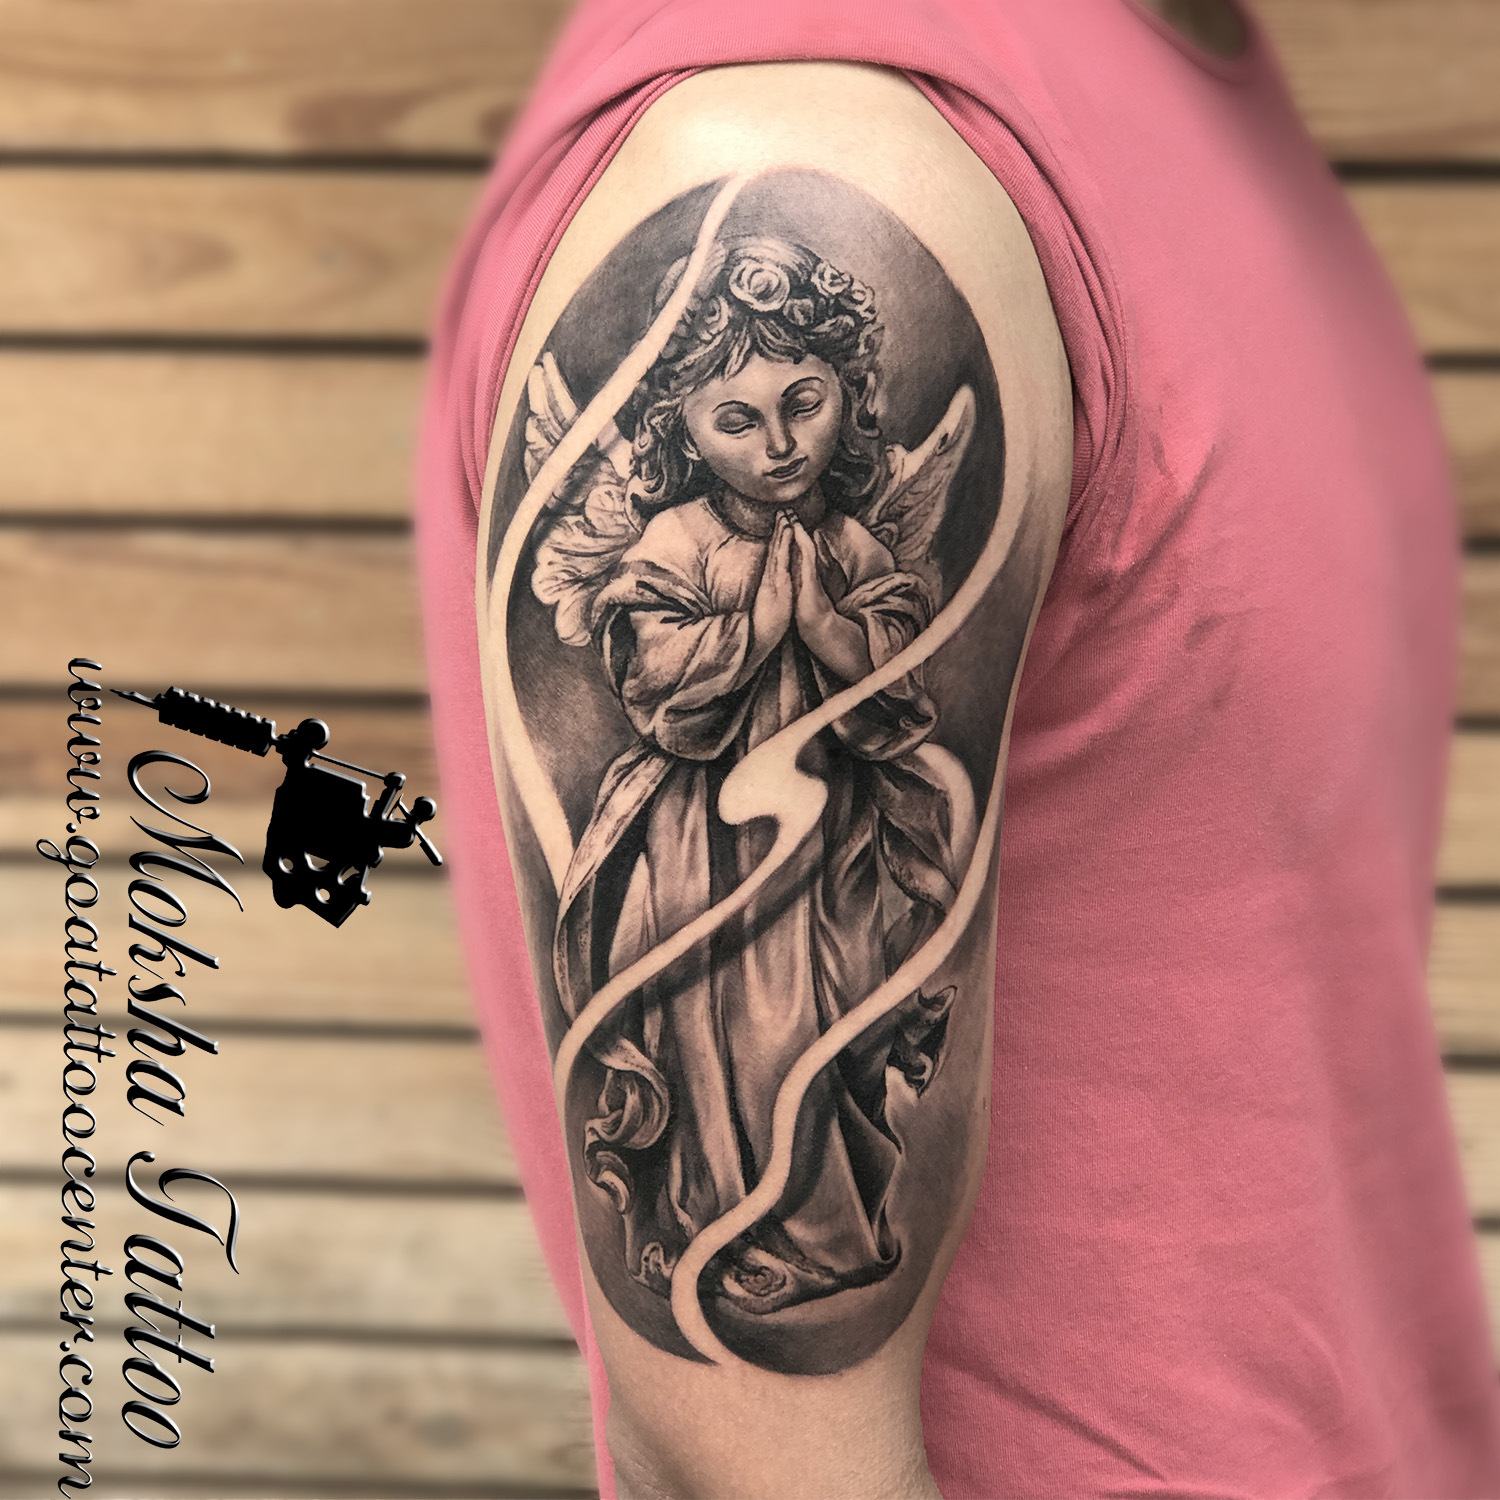 Baby Angel Tattoo done by Mukesh Waghela at Moksha Tattoo Studio Goa India.